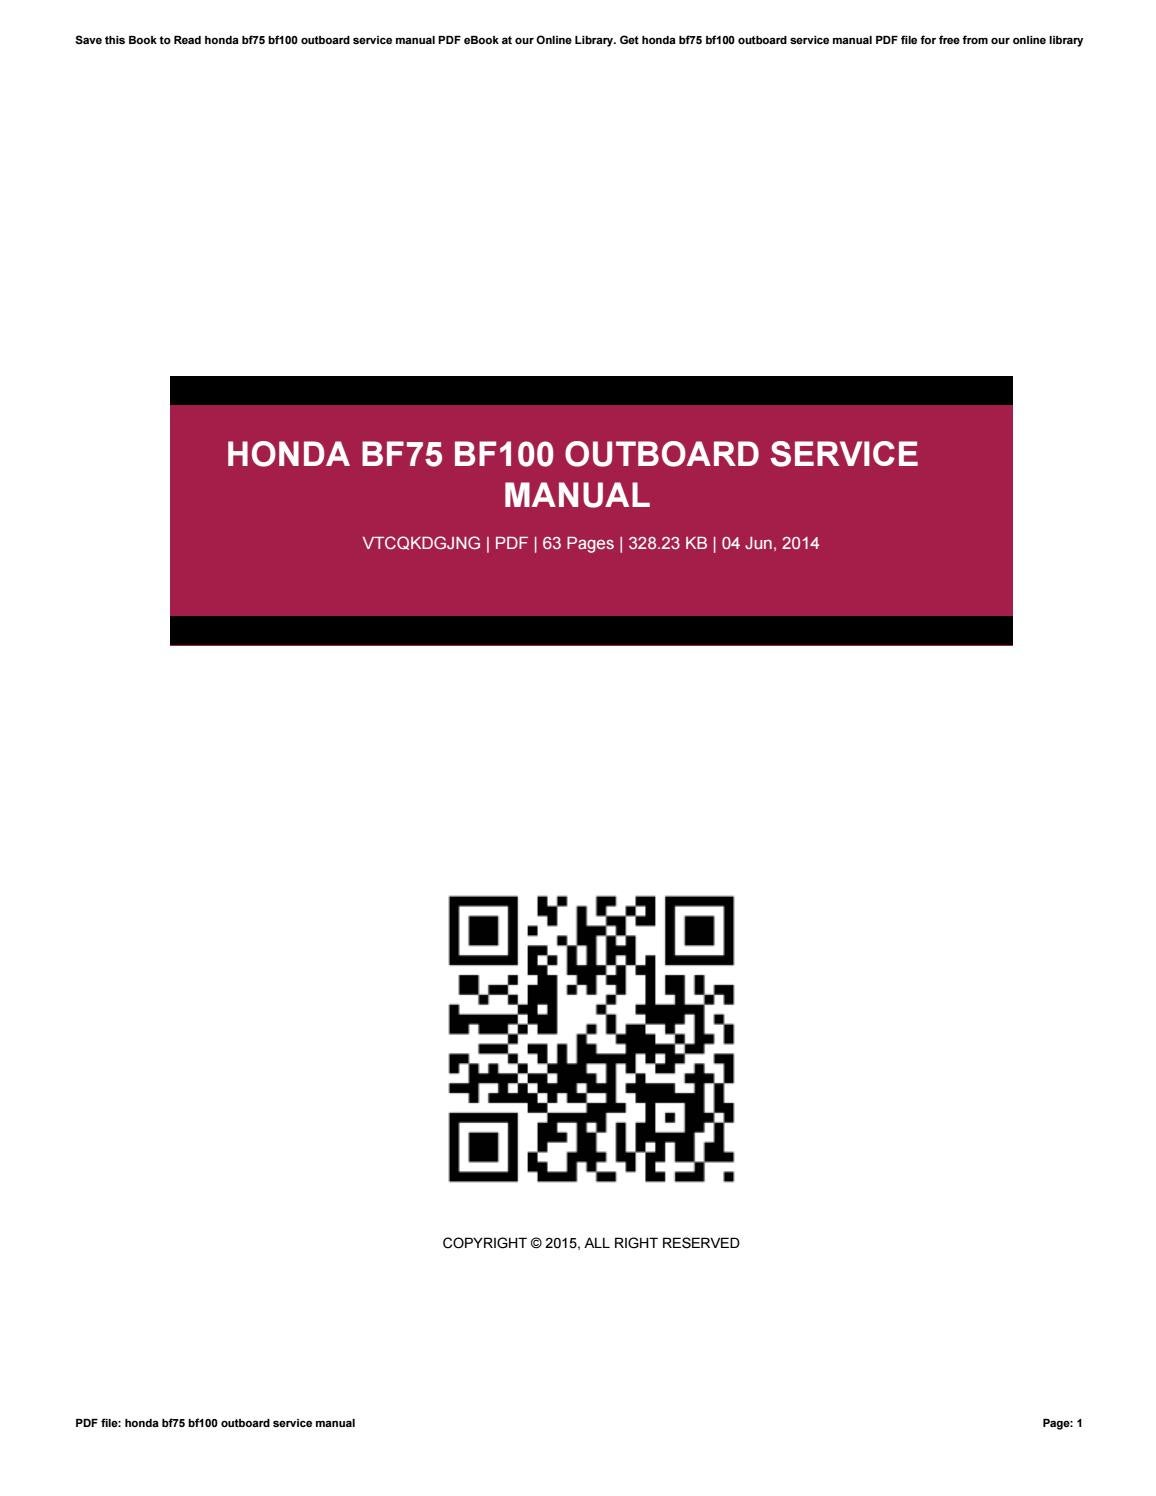 honda bf75 bf100 outboard service manual by kathleenbunch4293 issuu rh issuu com honda bf75 outboard service manual honda bf75 shop manual